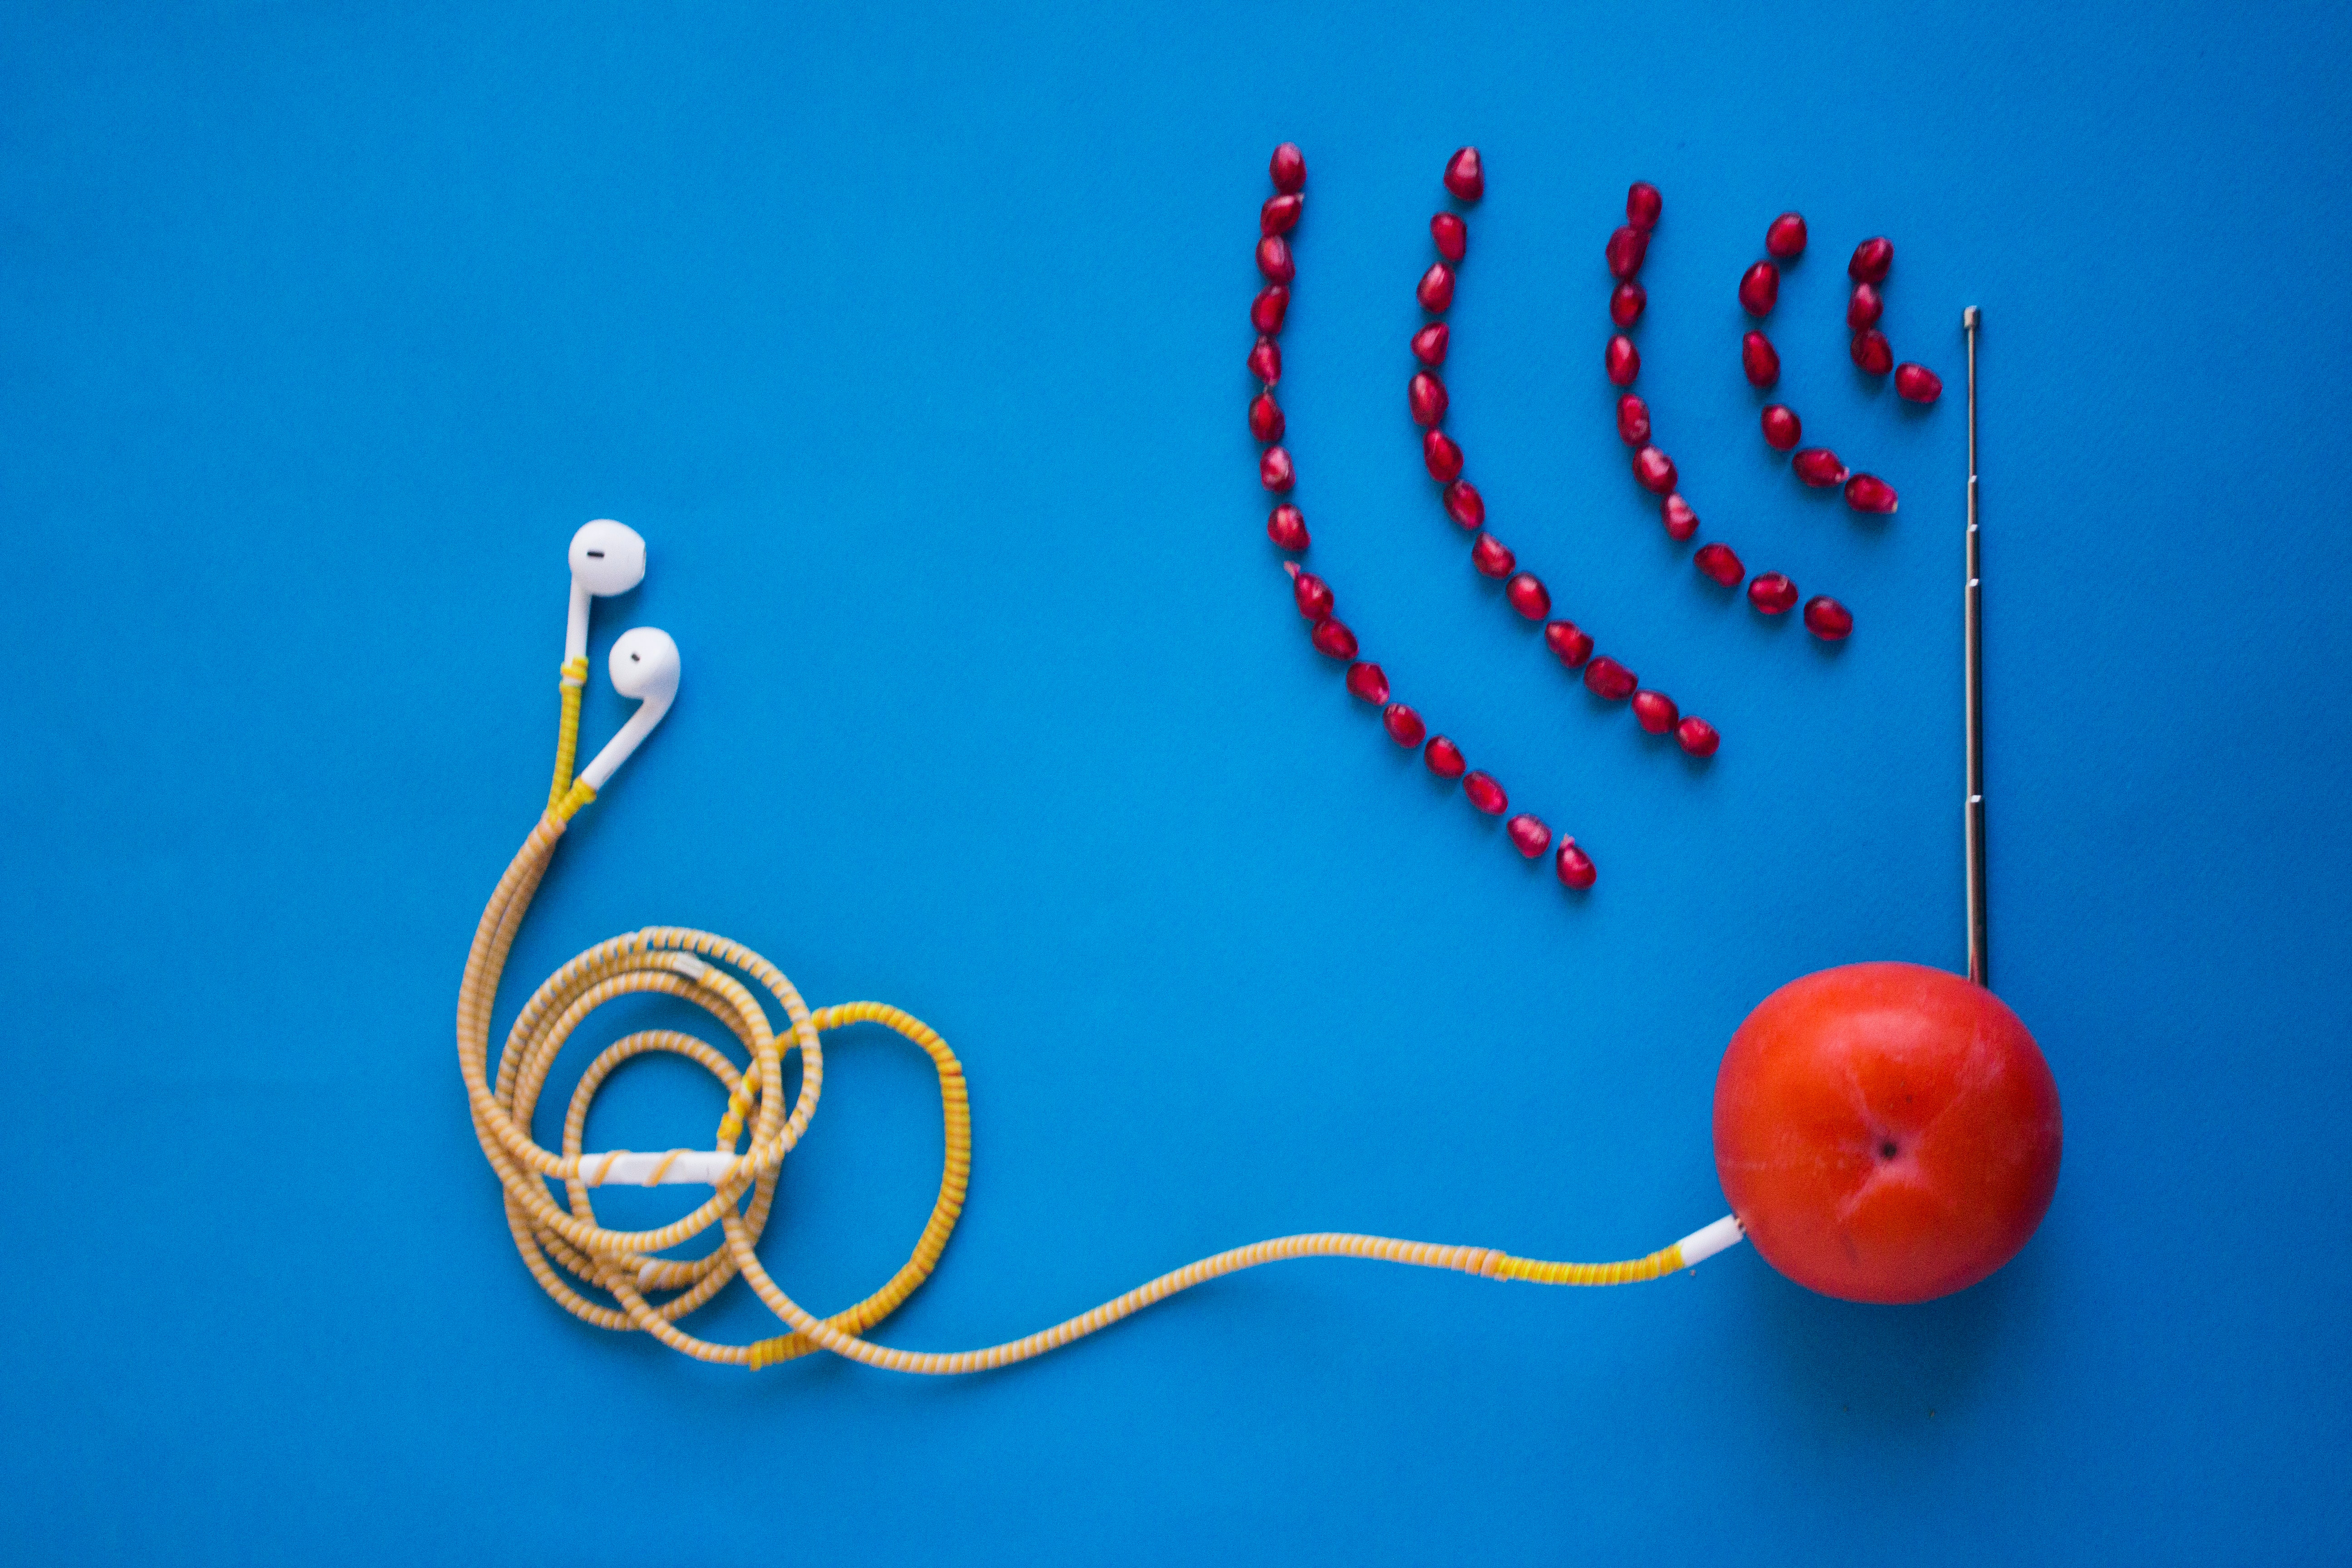 Image of a tomato with earbuds plugged into the tomato on the left side and an antenna sticking up from the top of the tomato with a signal emitting from the antenna made from pomegranate seeds.